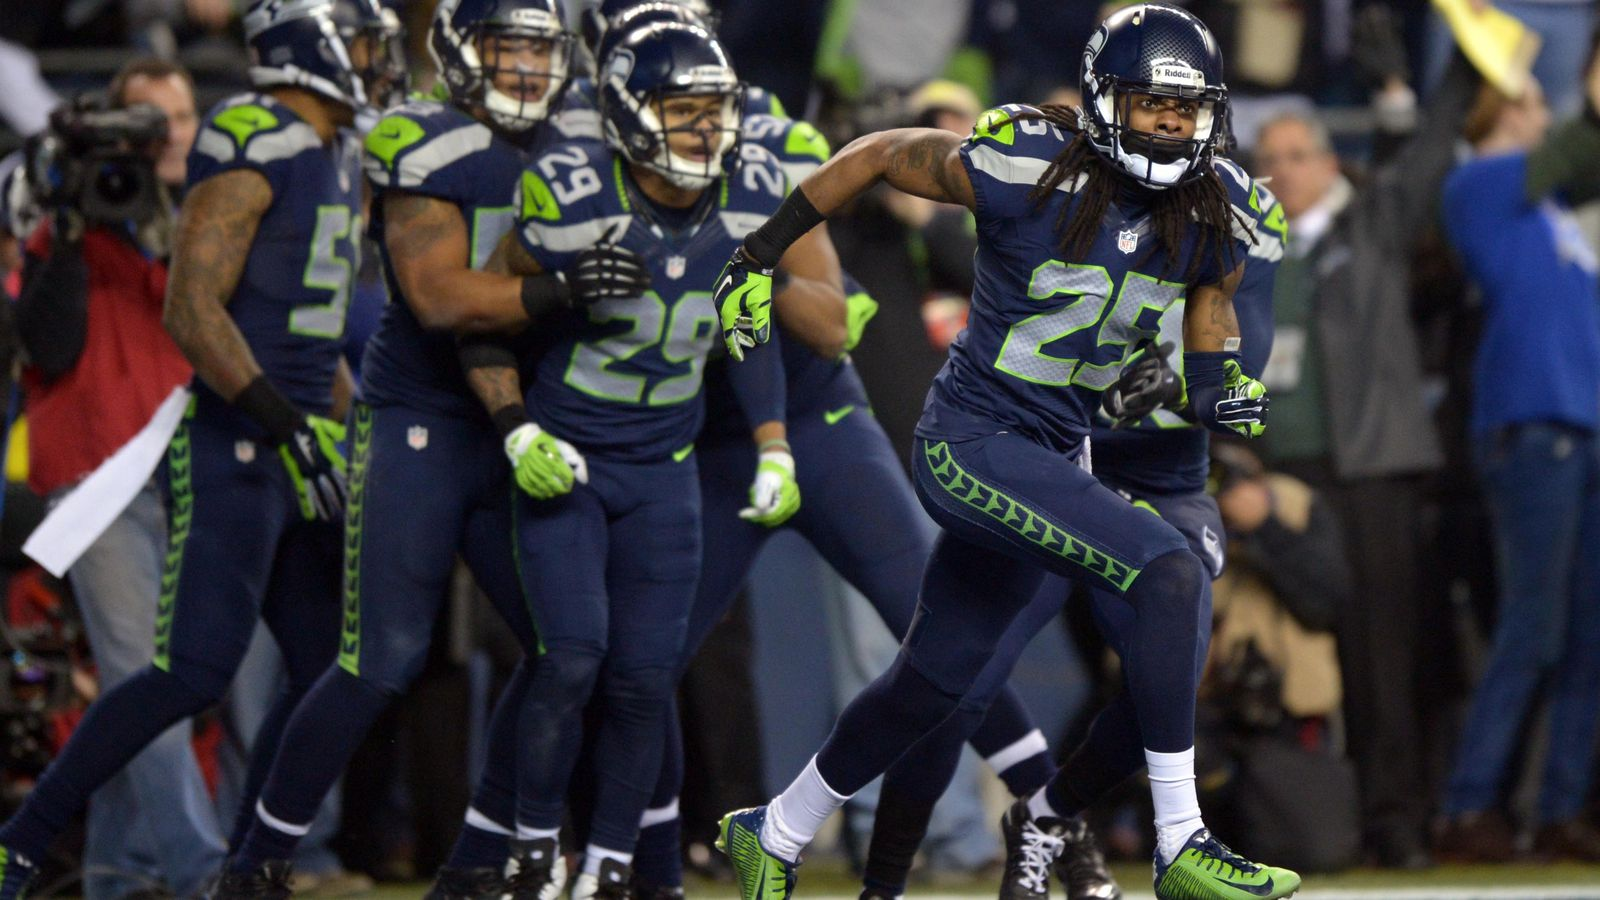 Seahawks vs Broncos, Super Bowl 2014: Offense or Defense